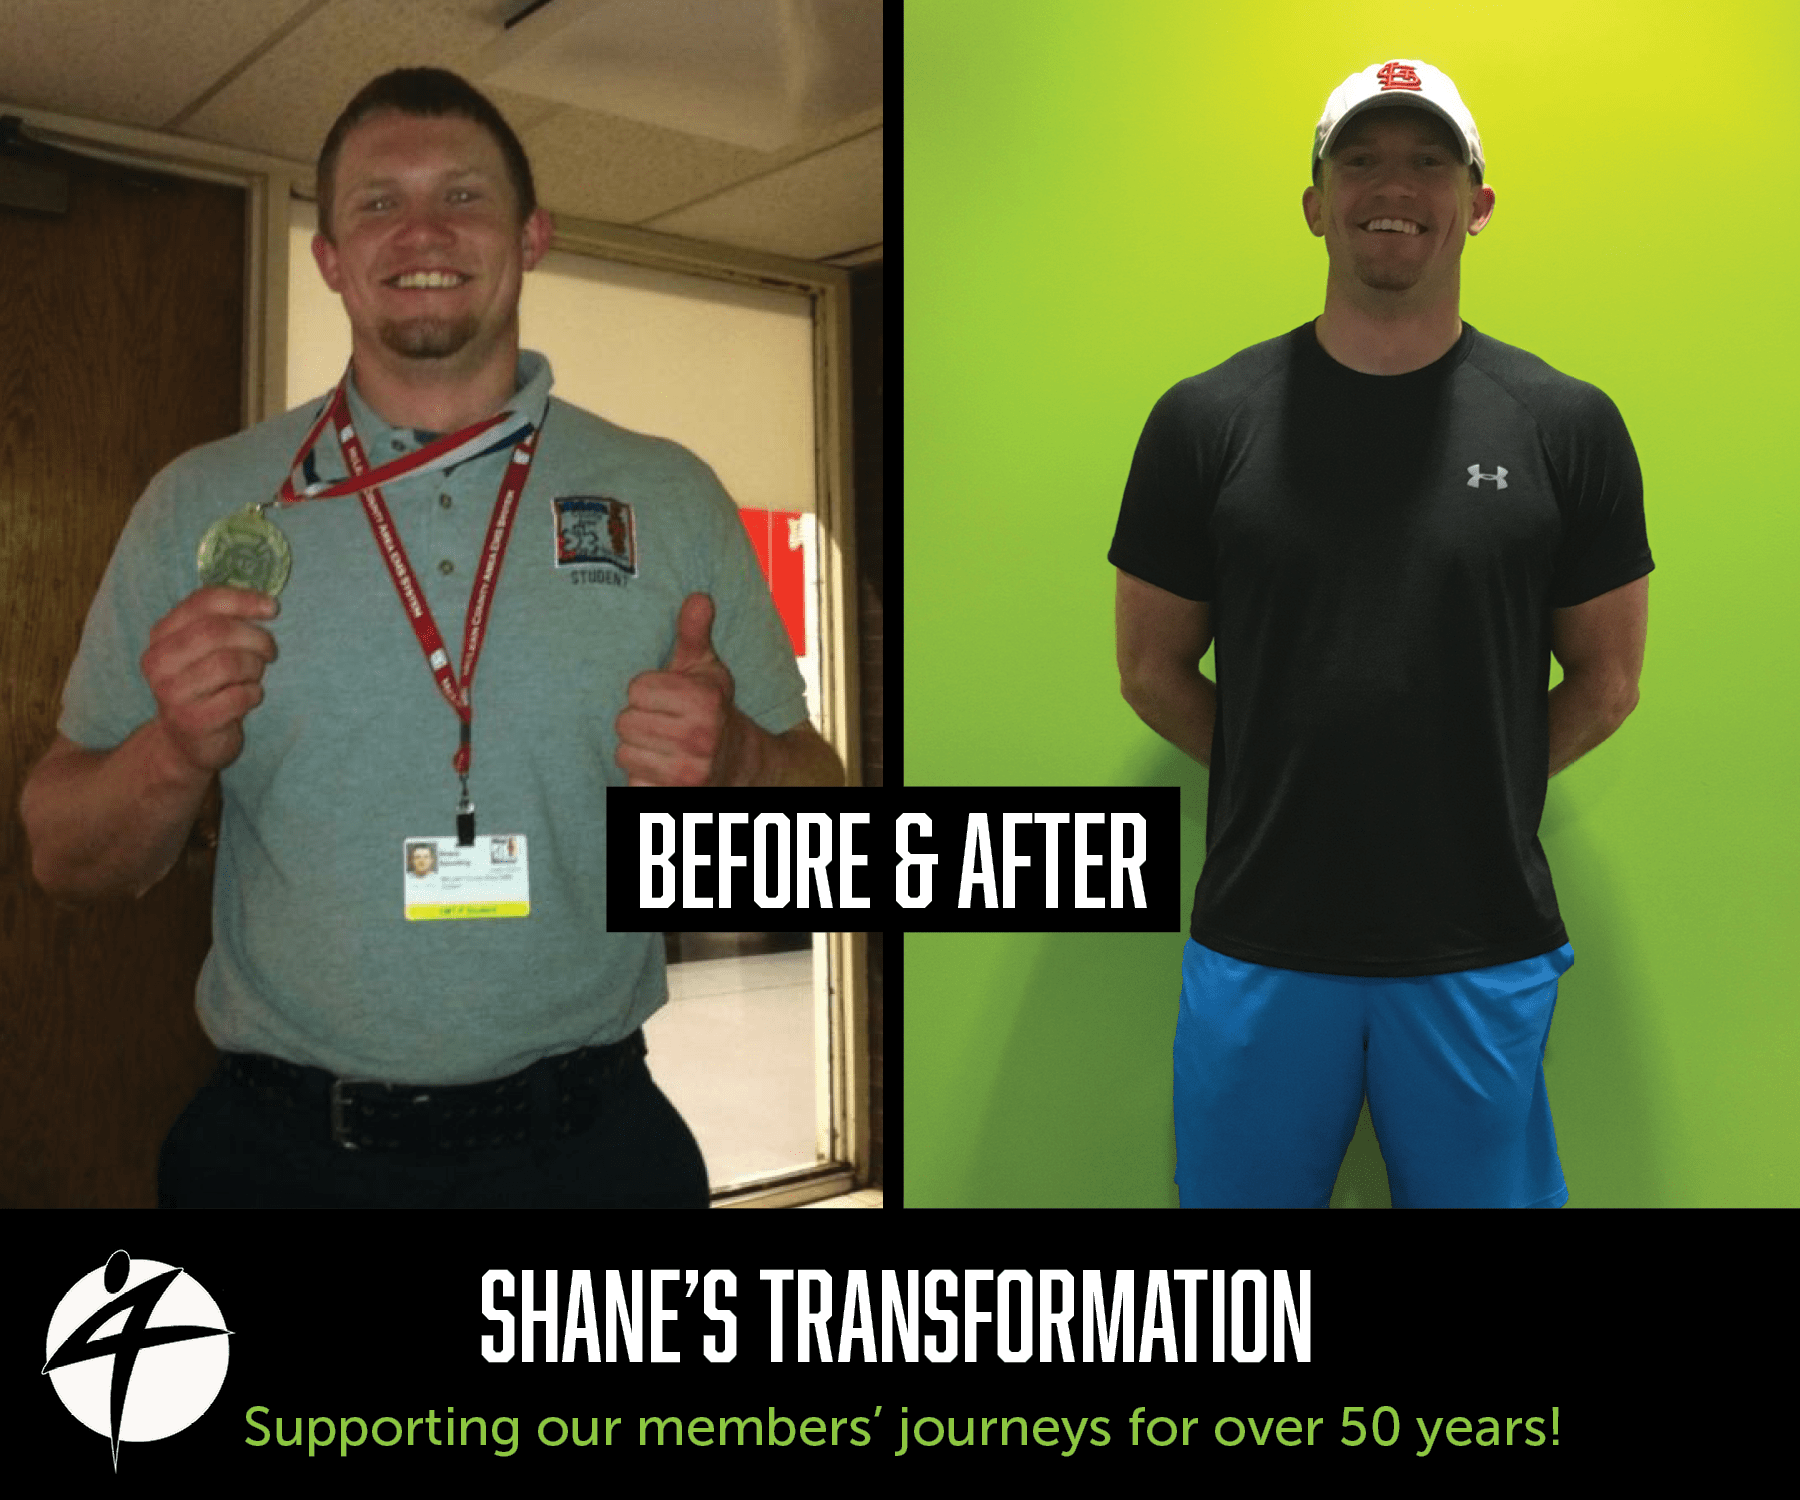 Shane's before and after photo